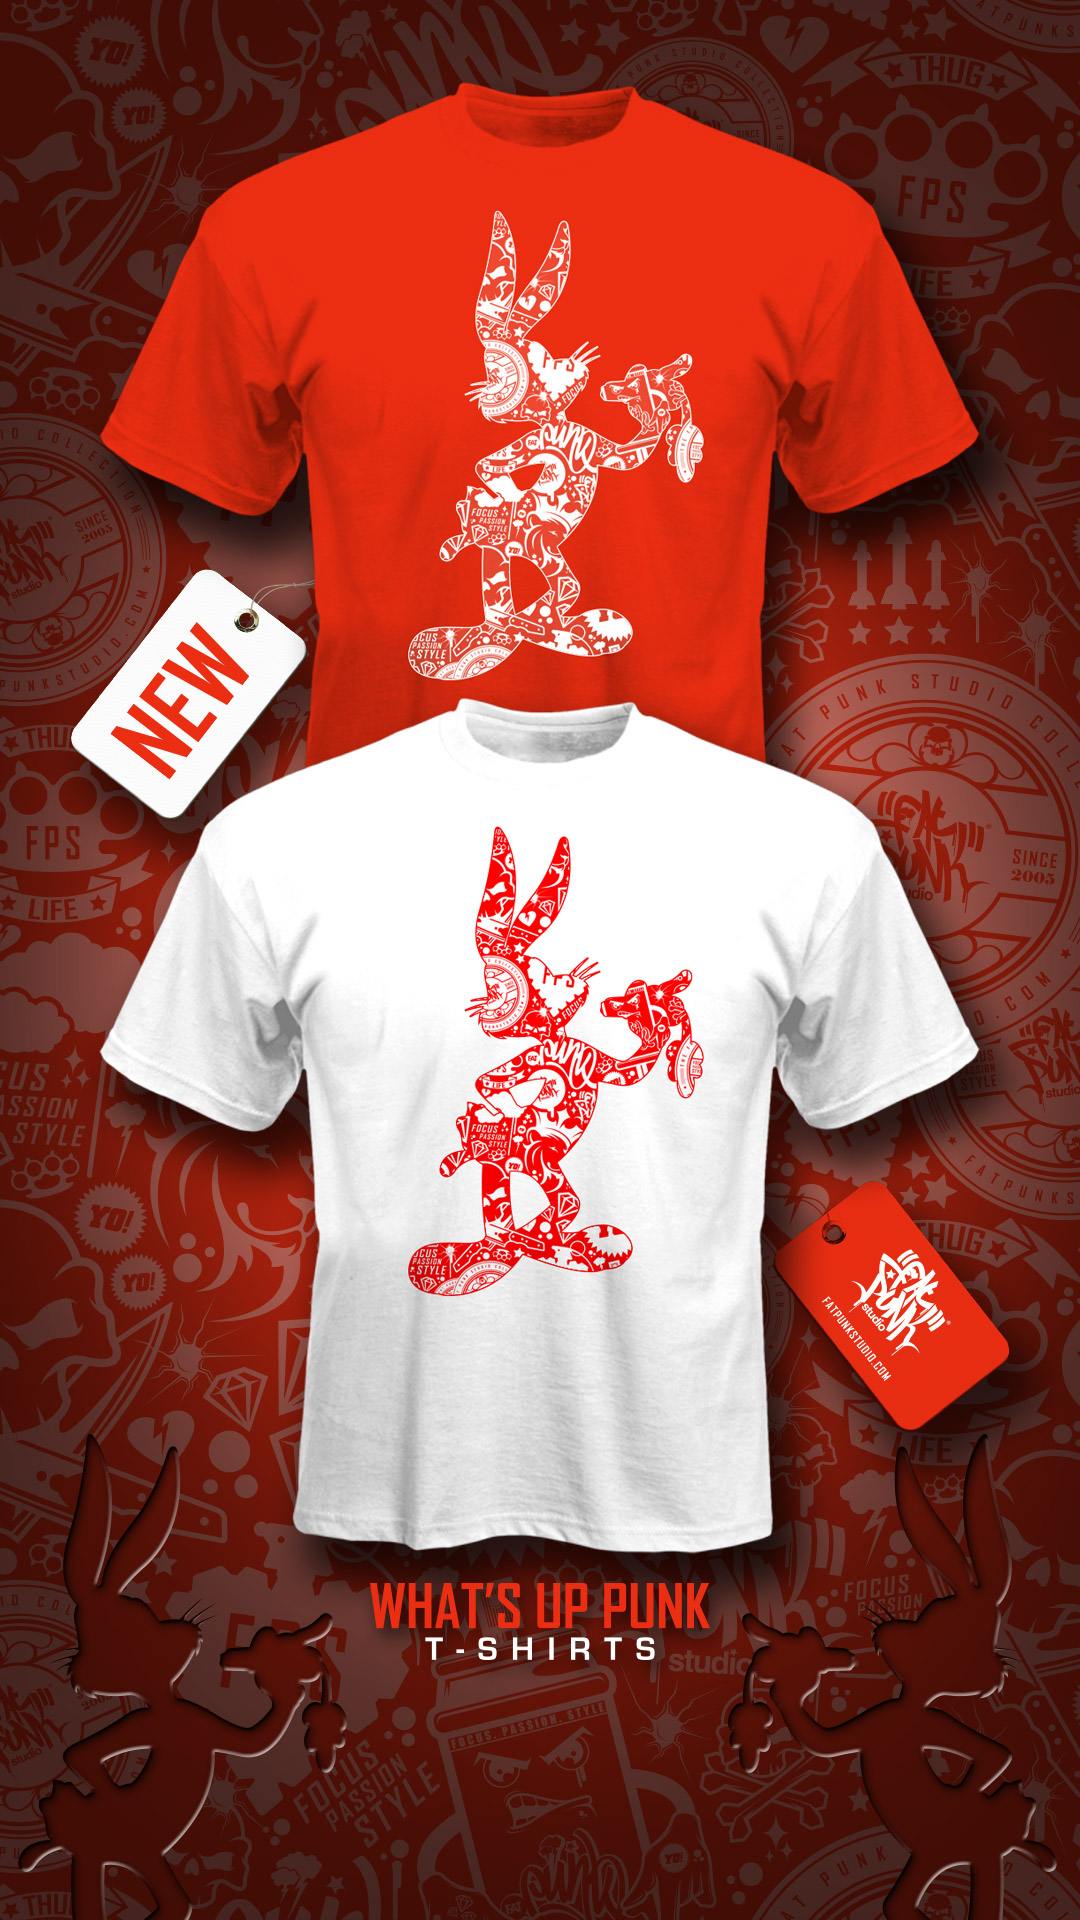 whats-up-punk-bugs-bunny-clothing-03